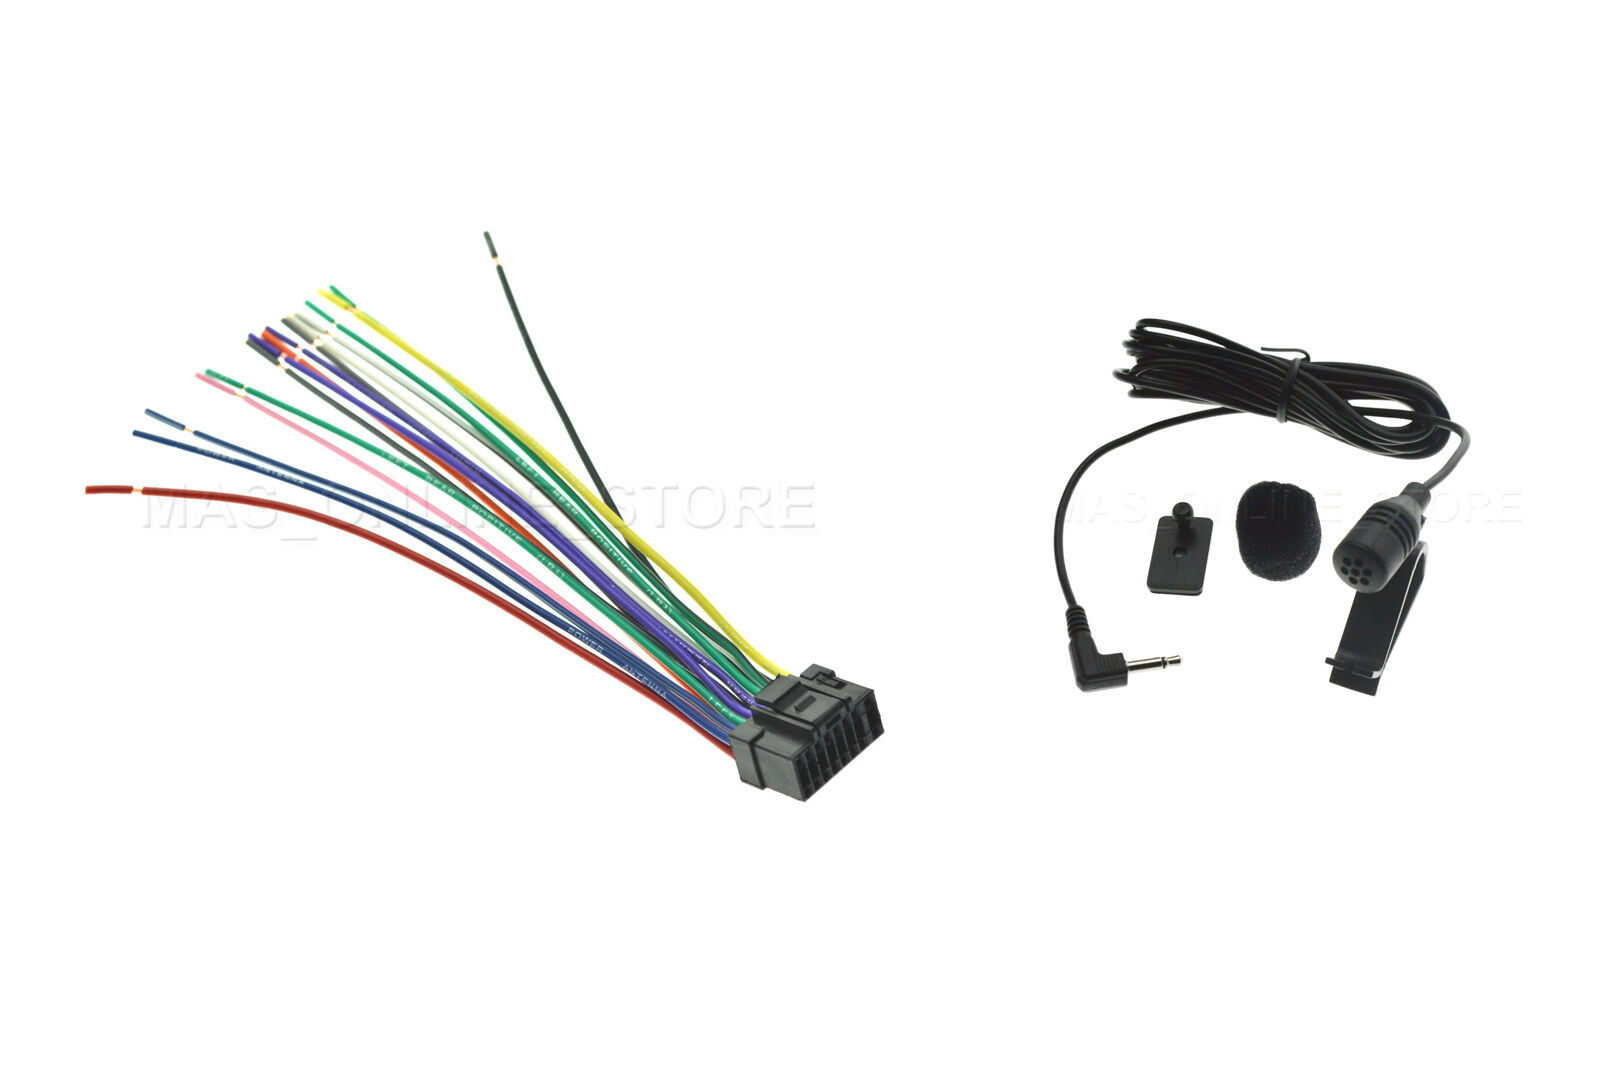 Wire Harness Mic For Alpine Ive W535Hd Ivew535Hd wire harness & mic for alpine ive w535hd ivew535hd ics x7hd alpine ive-w535hd wiring harness at panicattacktreatment.co